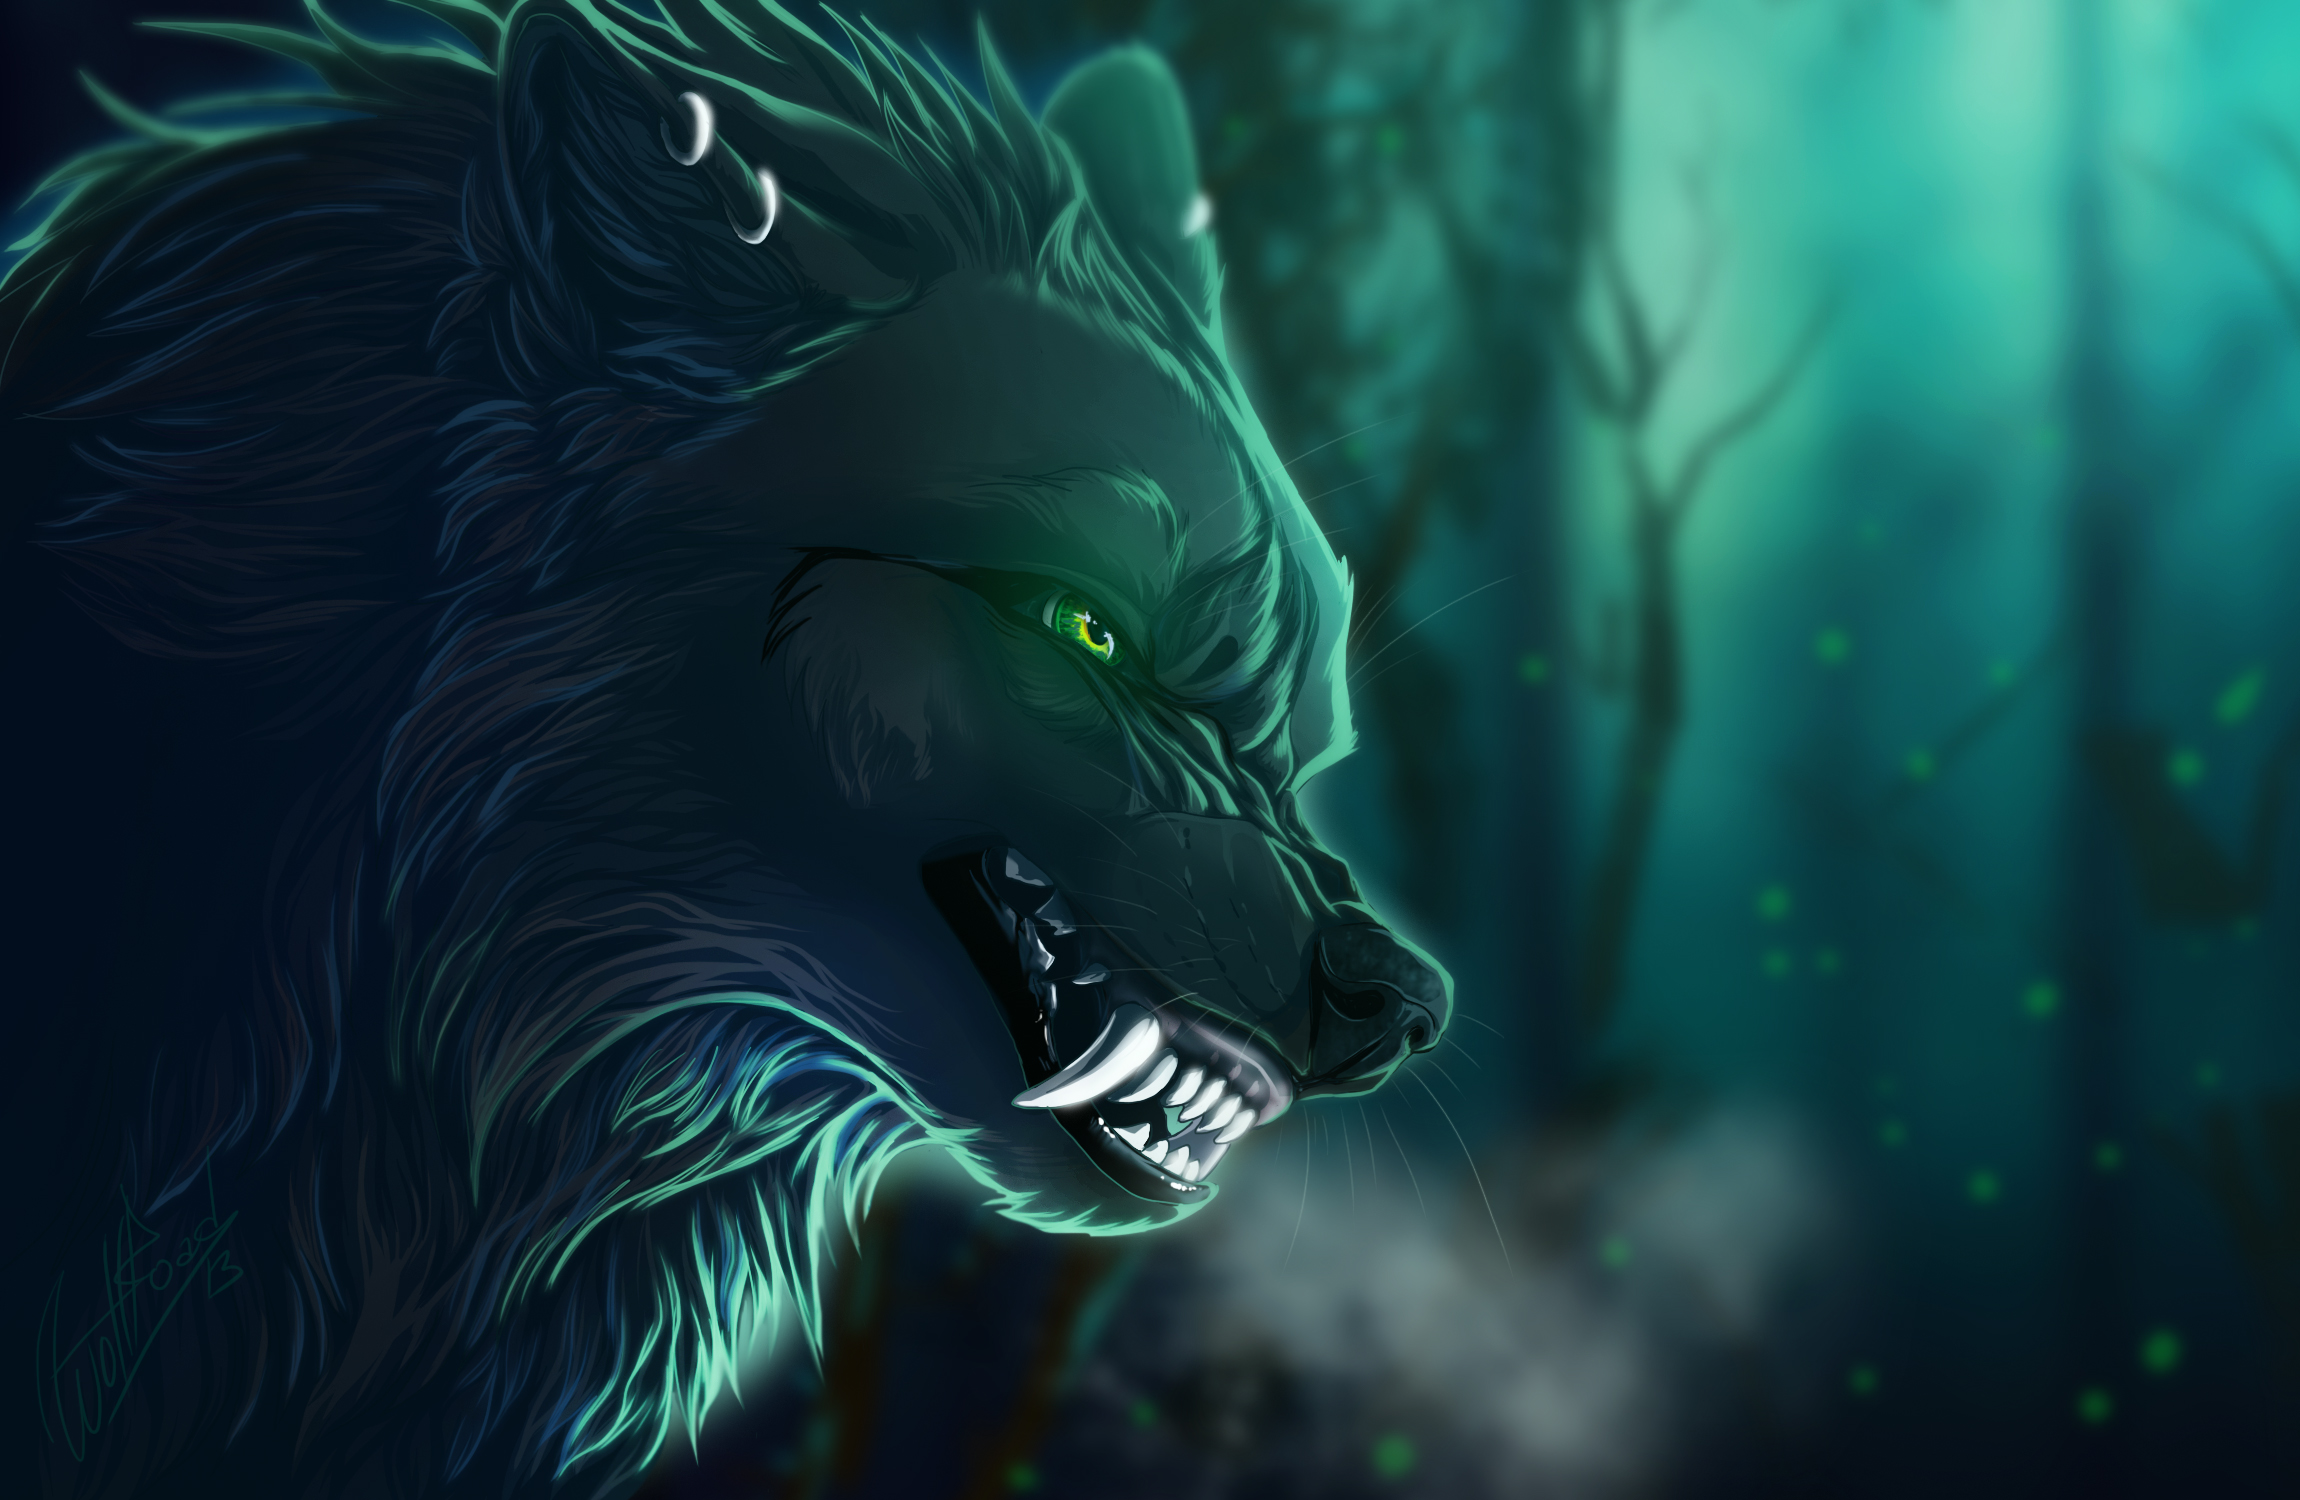 Wolf full hd wallpaper and background image 2300x1500 for Green monster fishing light